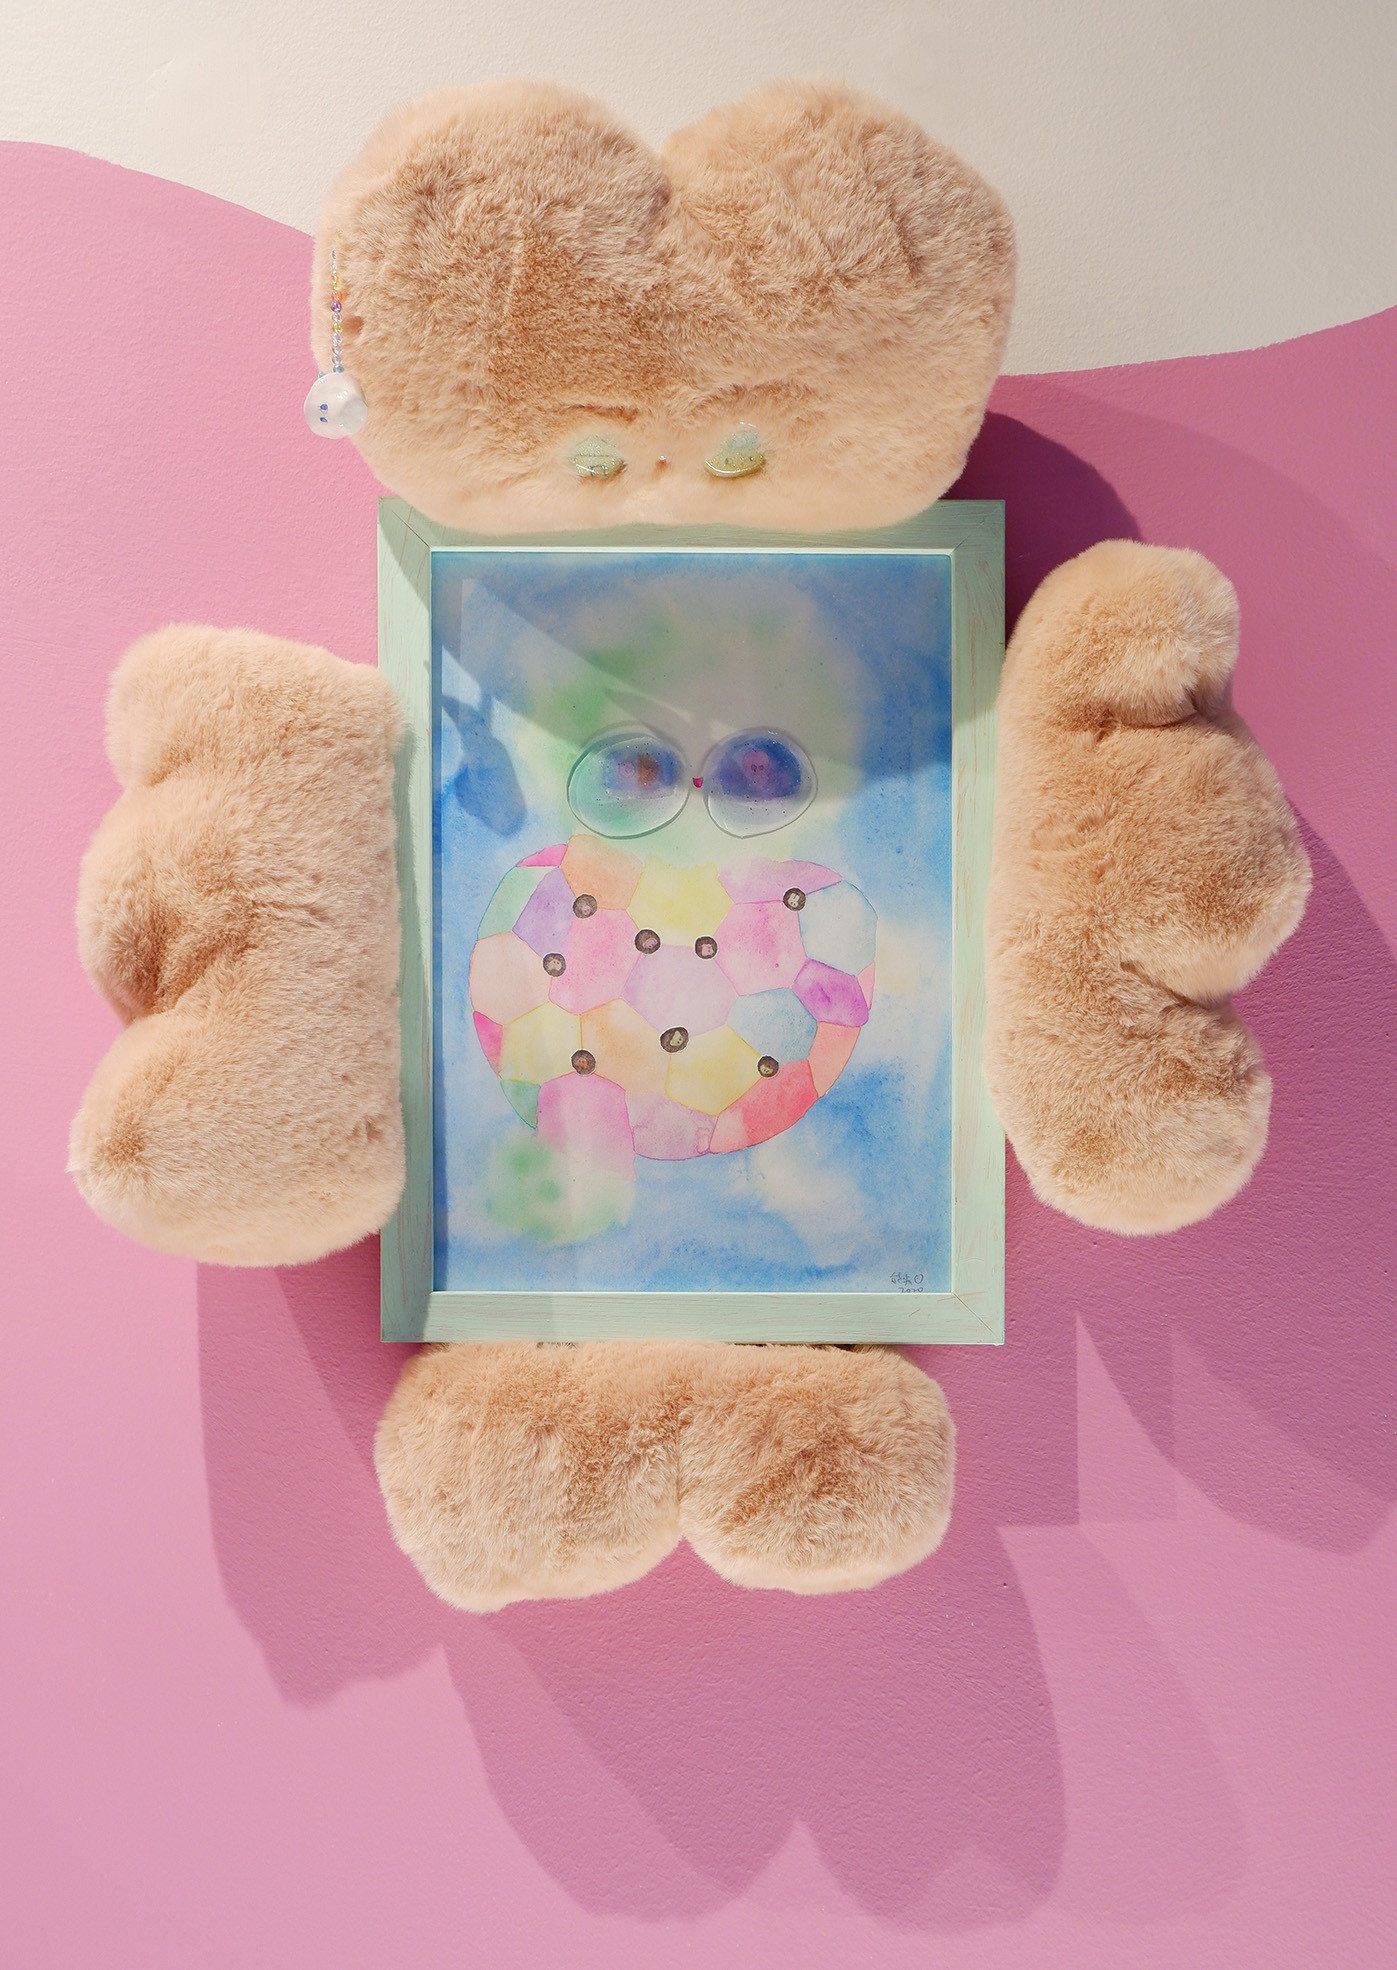 Nhozagri Aturtle in My Heart, 2020 Watercolor on paper, resin, plush, clay 45 x 30 cm